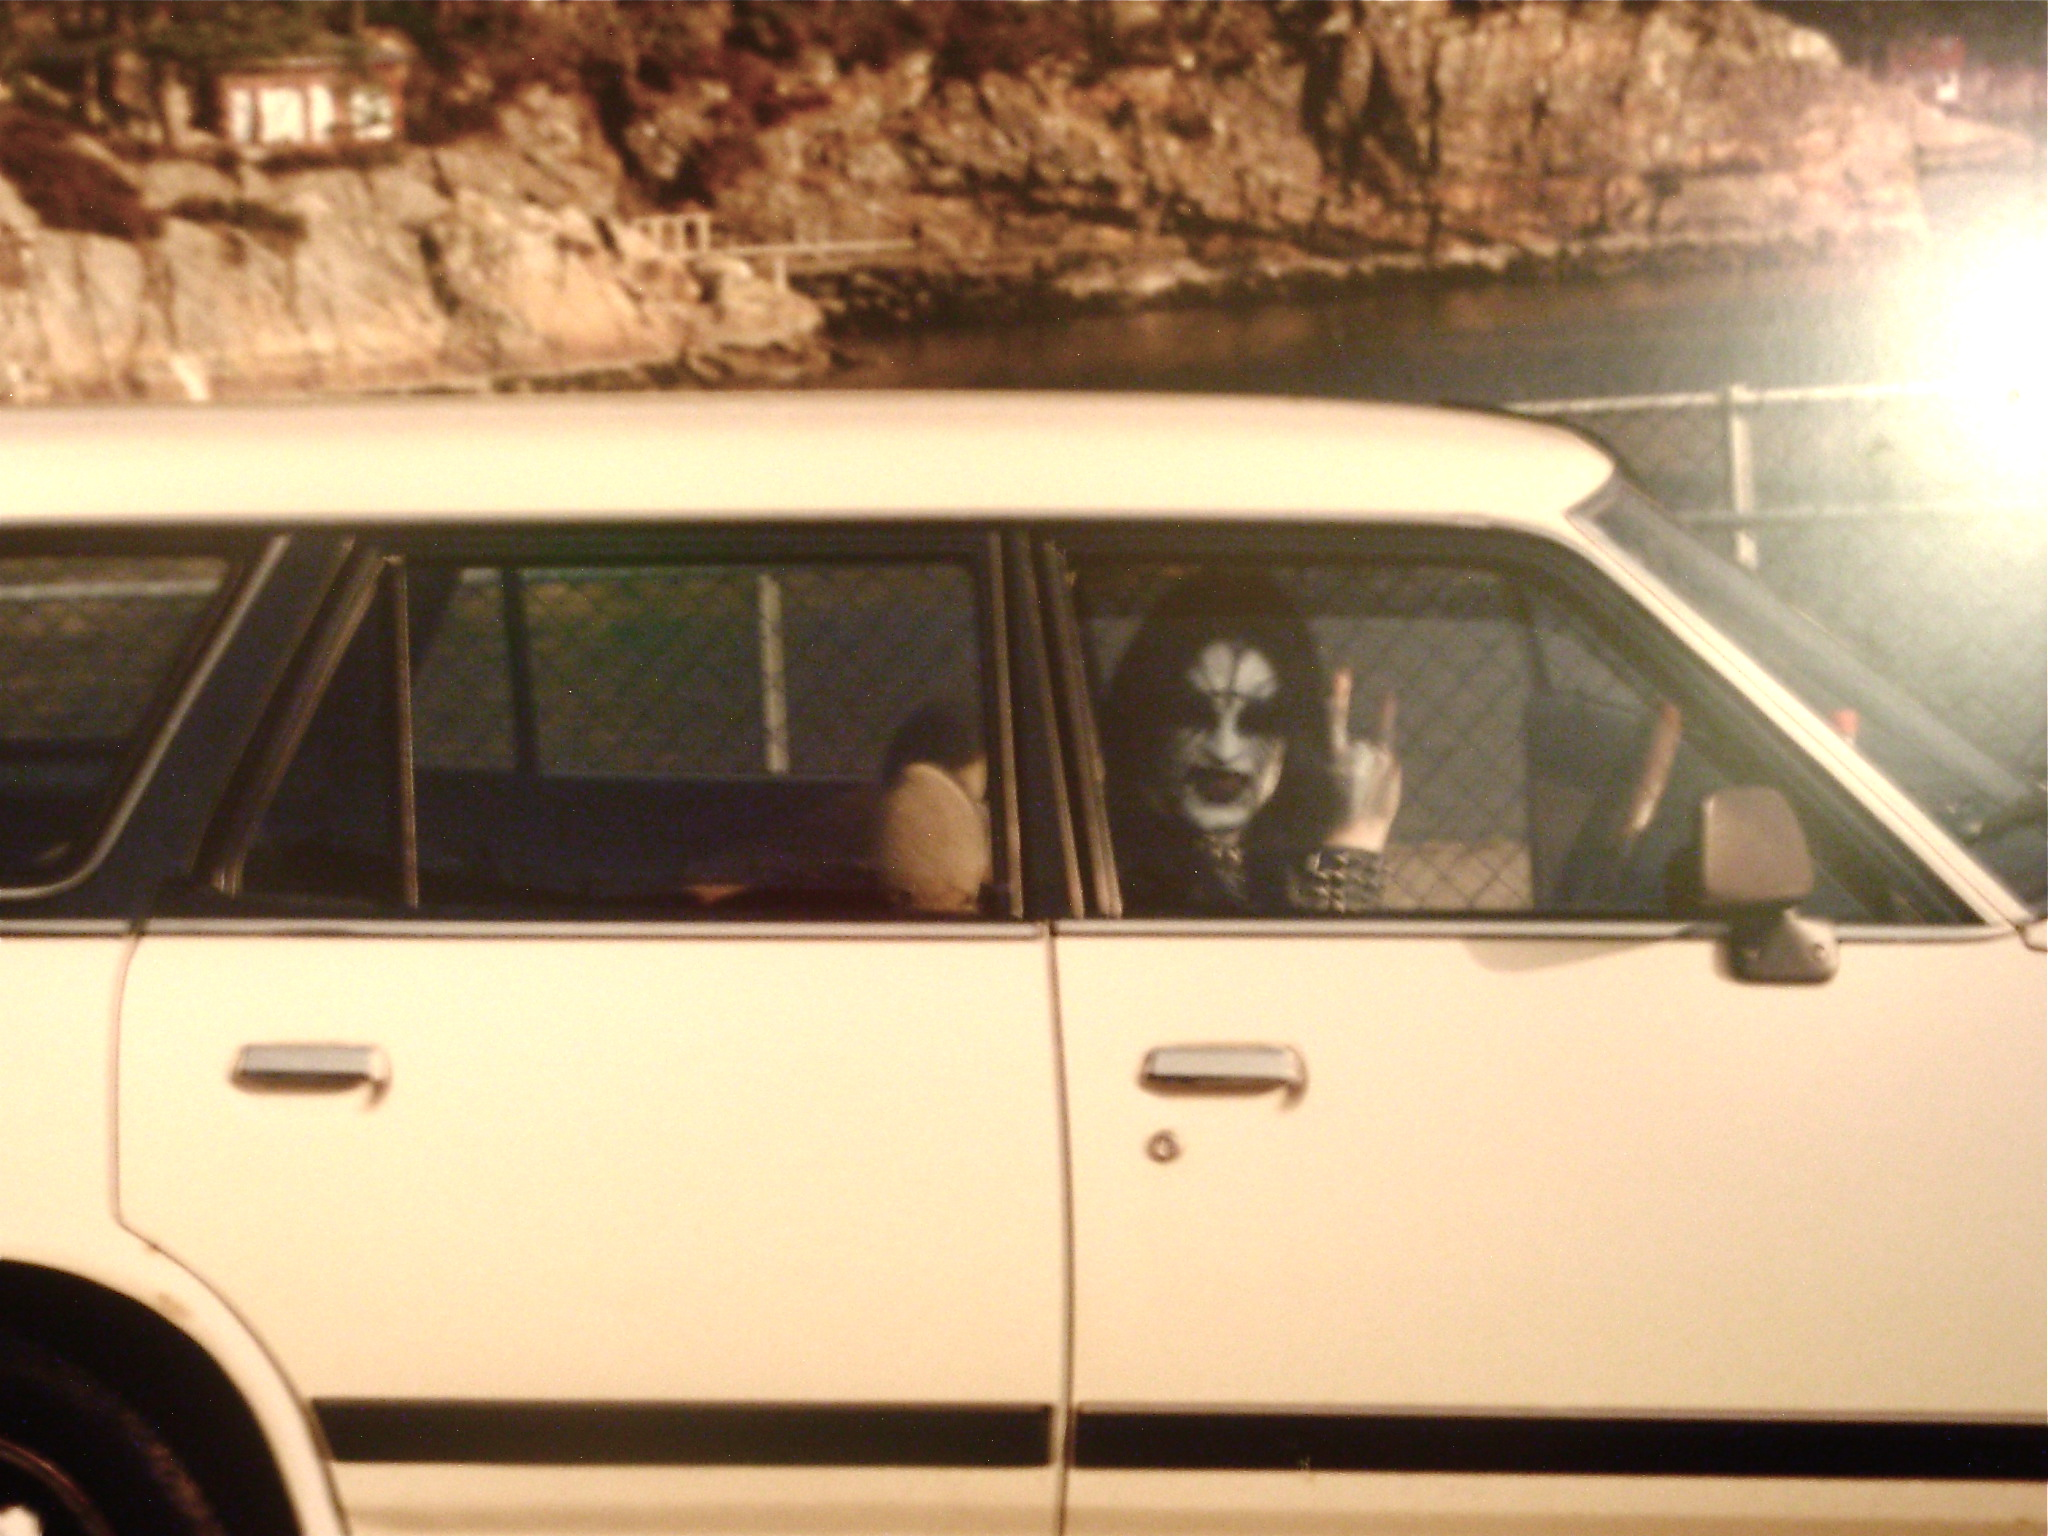 get out of my bad dreams, get into my car